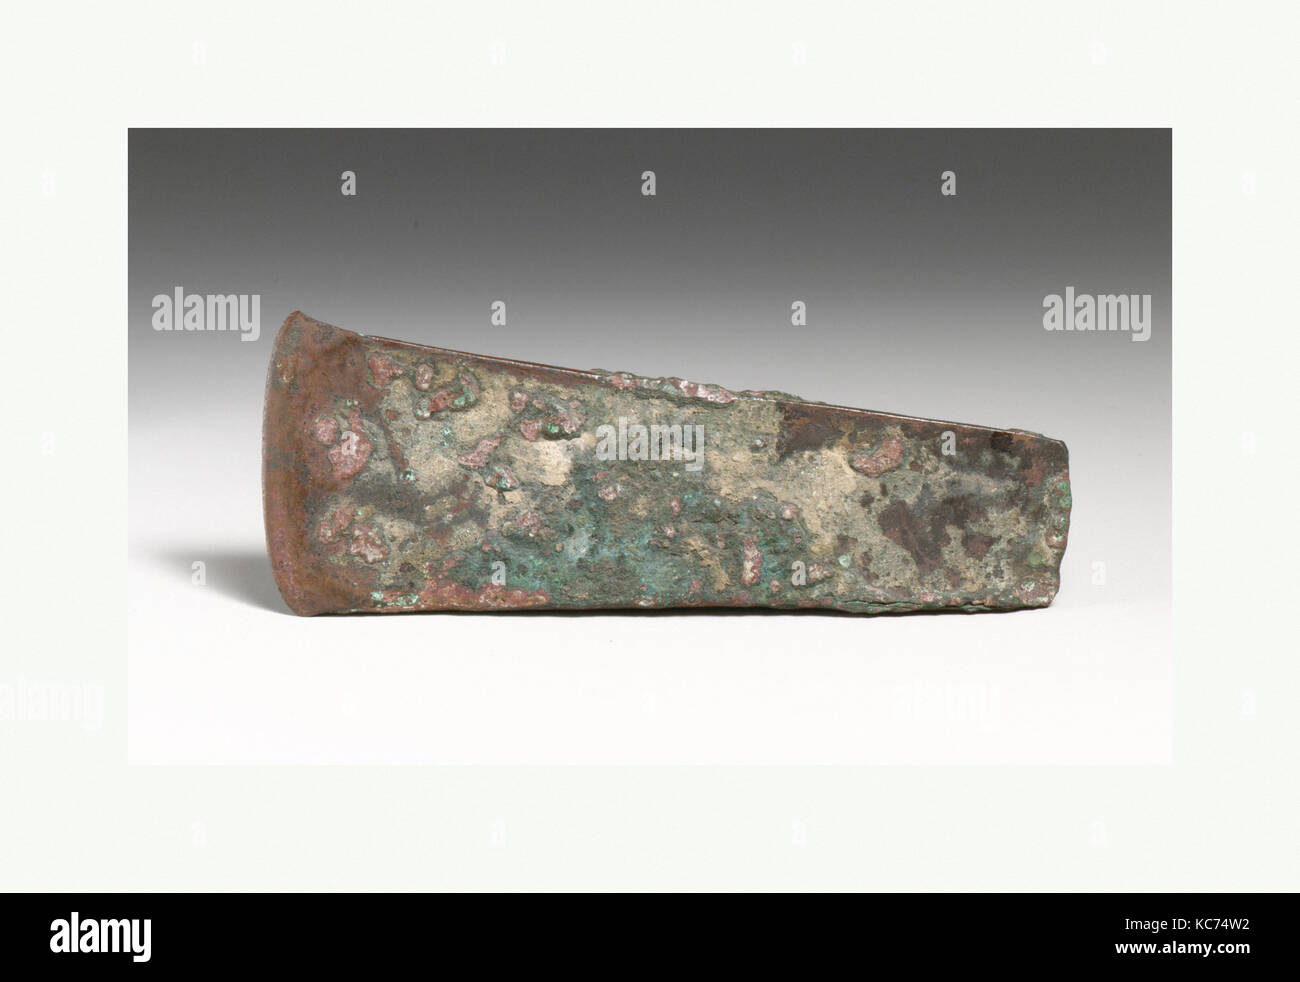 Bronze axe head, Early Bronze Age, ca. 2500–1900 B.C., Cypriot, Bronze, length 5 13/16in. (14.8cm), Bronzes, Cutting - Stock Image